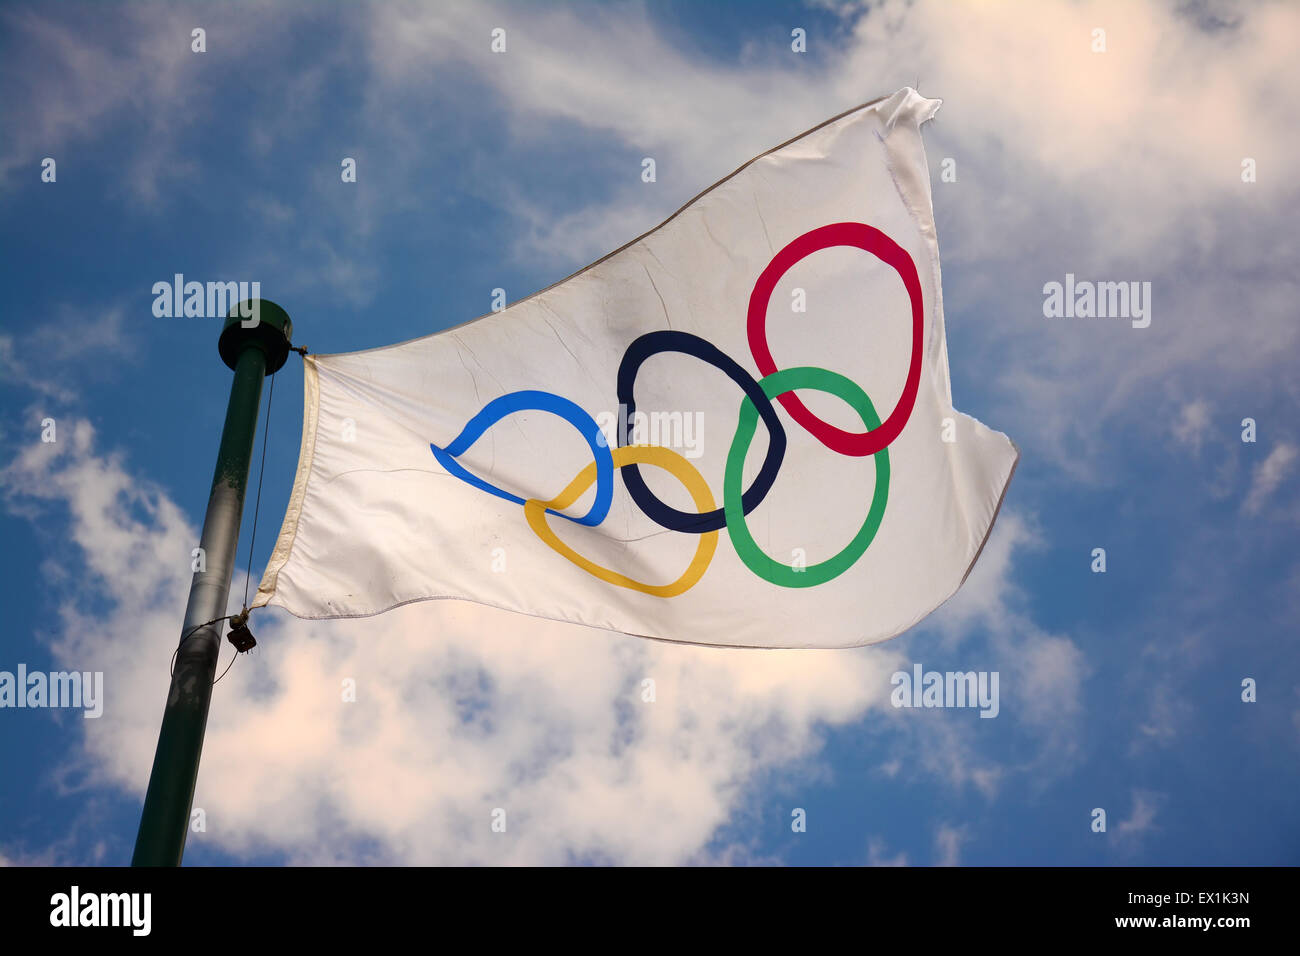 Olympic flag in the wind - Stock Image